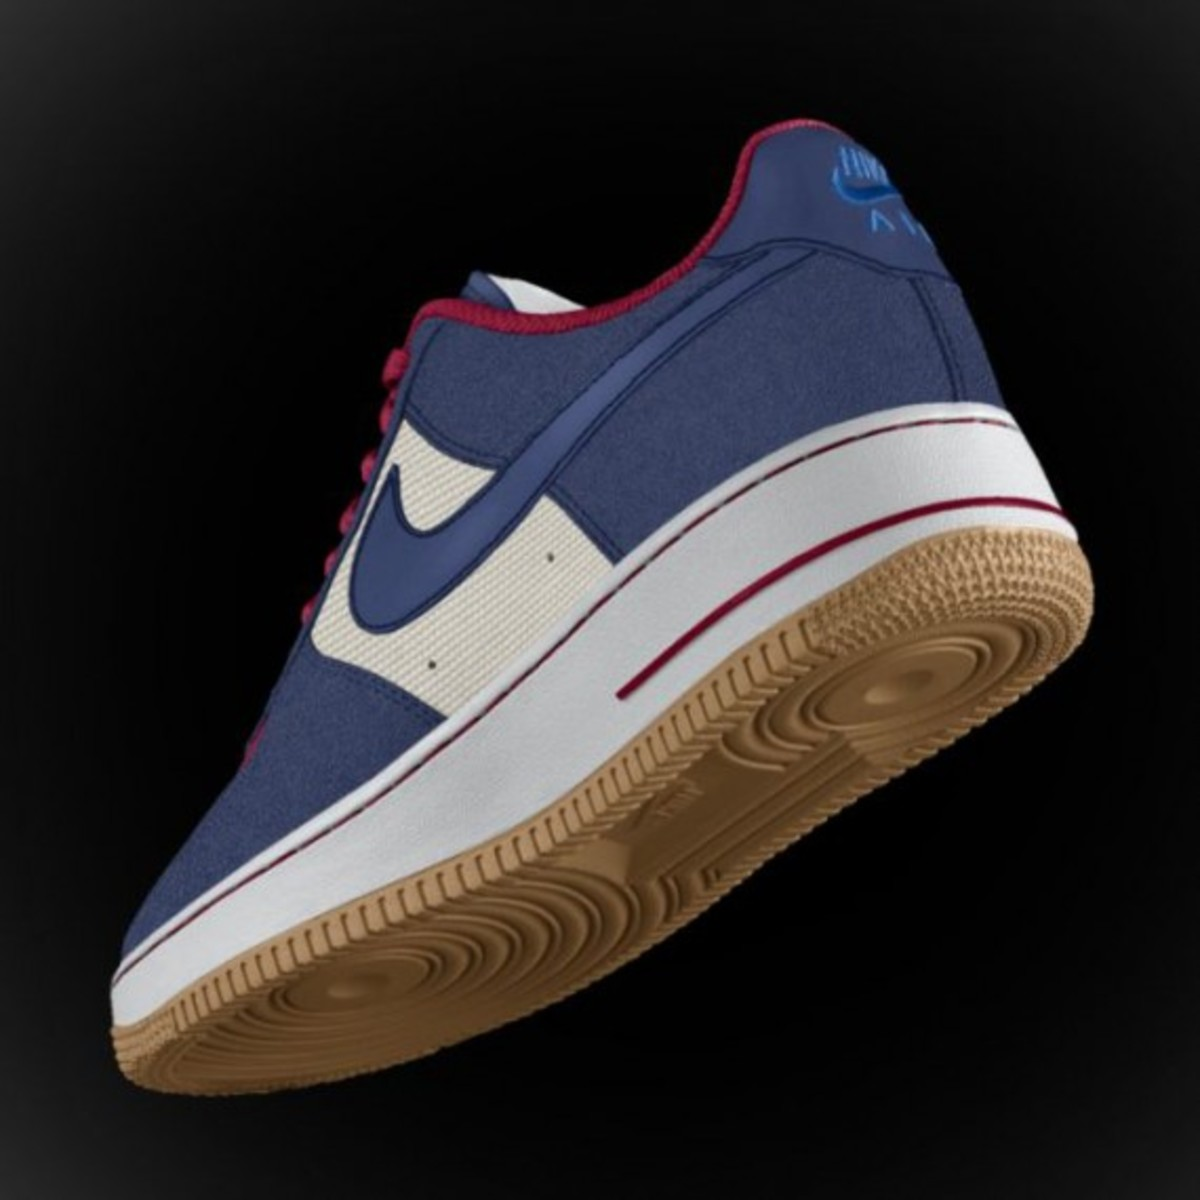 nike-air-force-1-id-gum-rubber-outsole-05